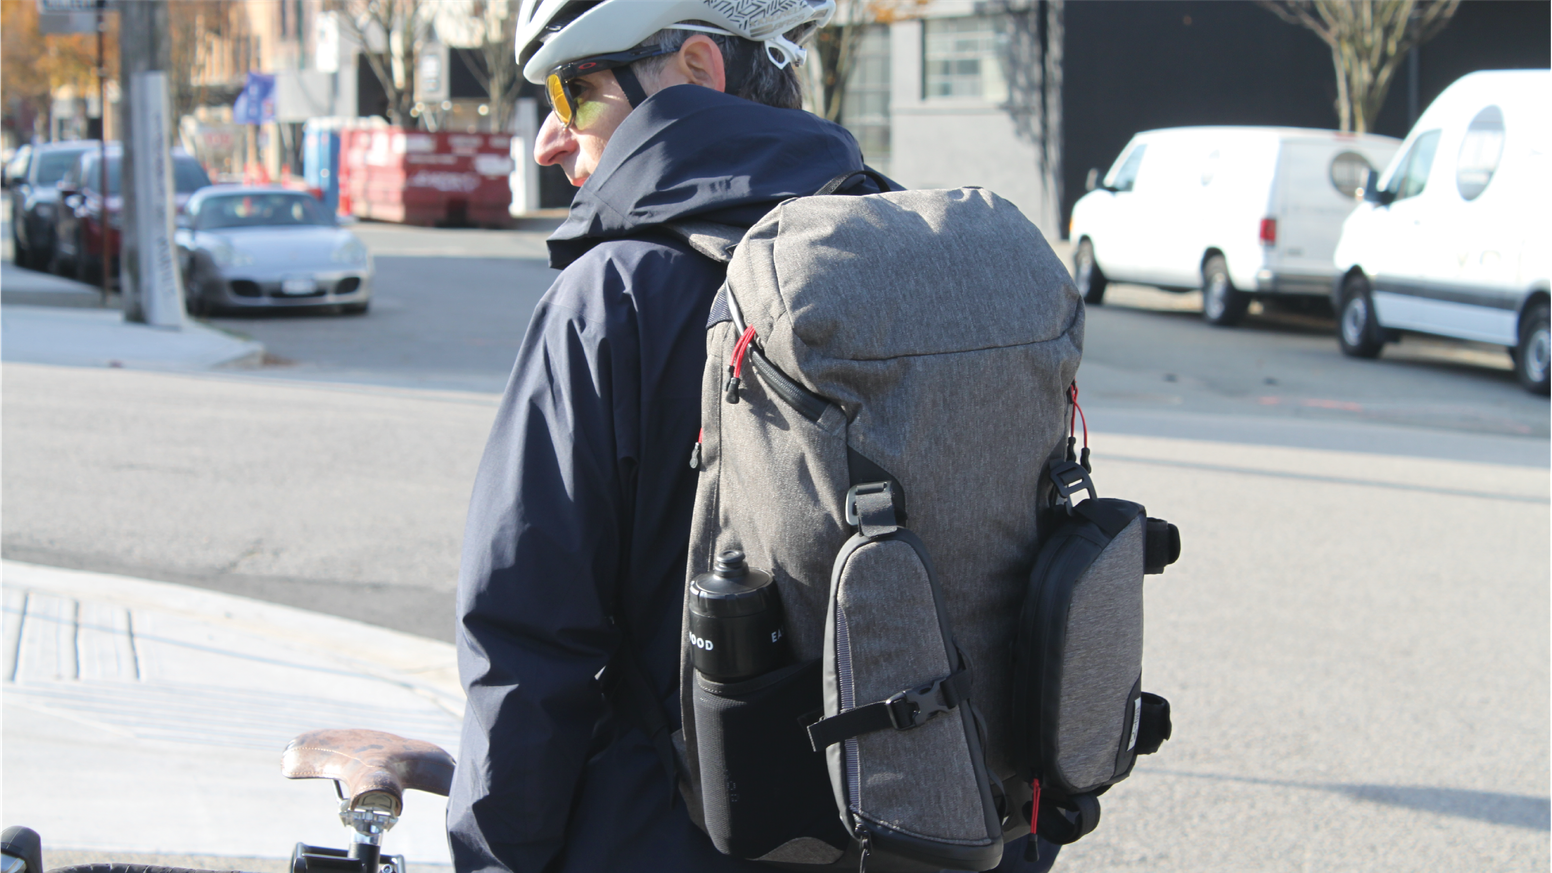 The 3-piece commuter bag designed to carry everything on and off your bicycle